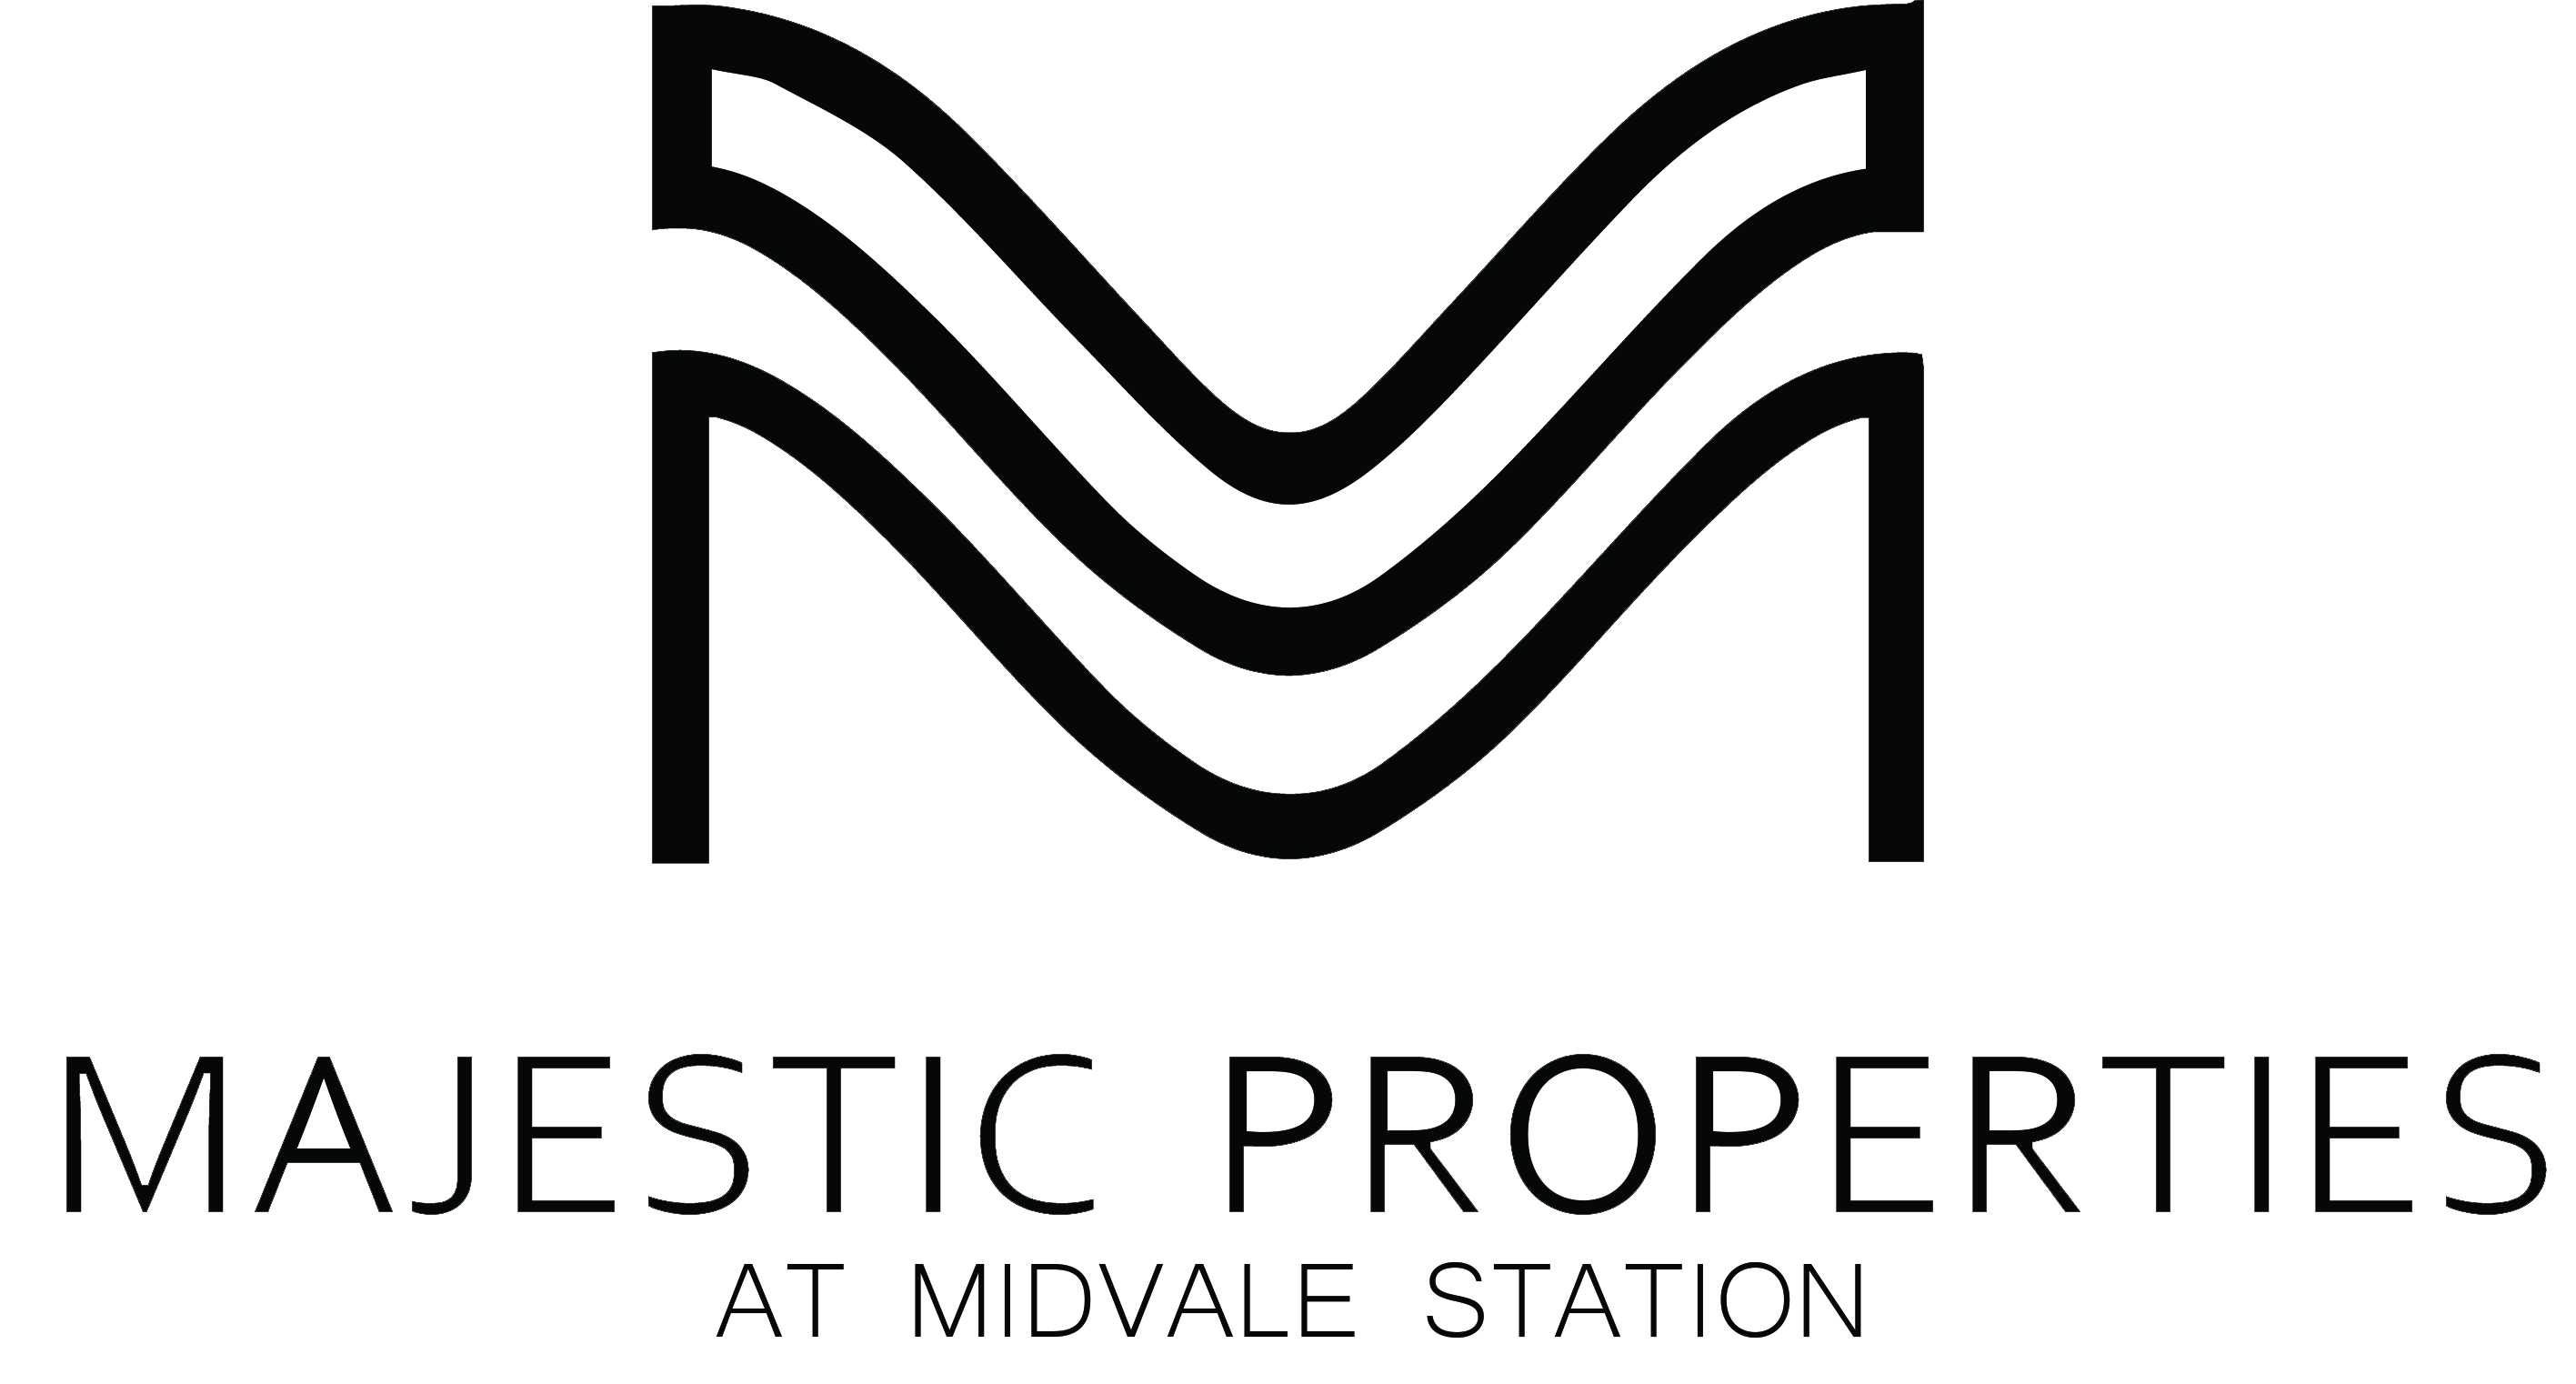 Majestic Properties at Midvale Station